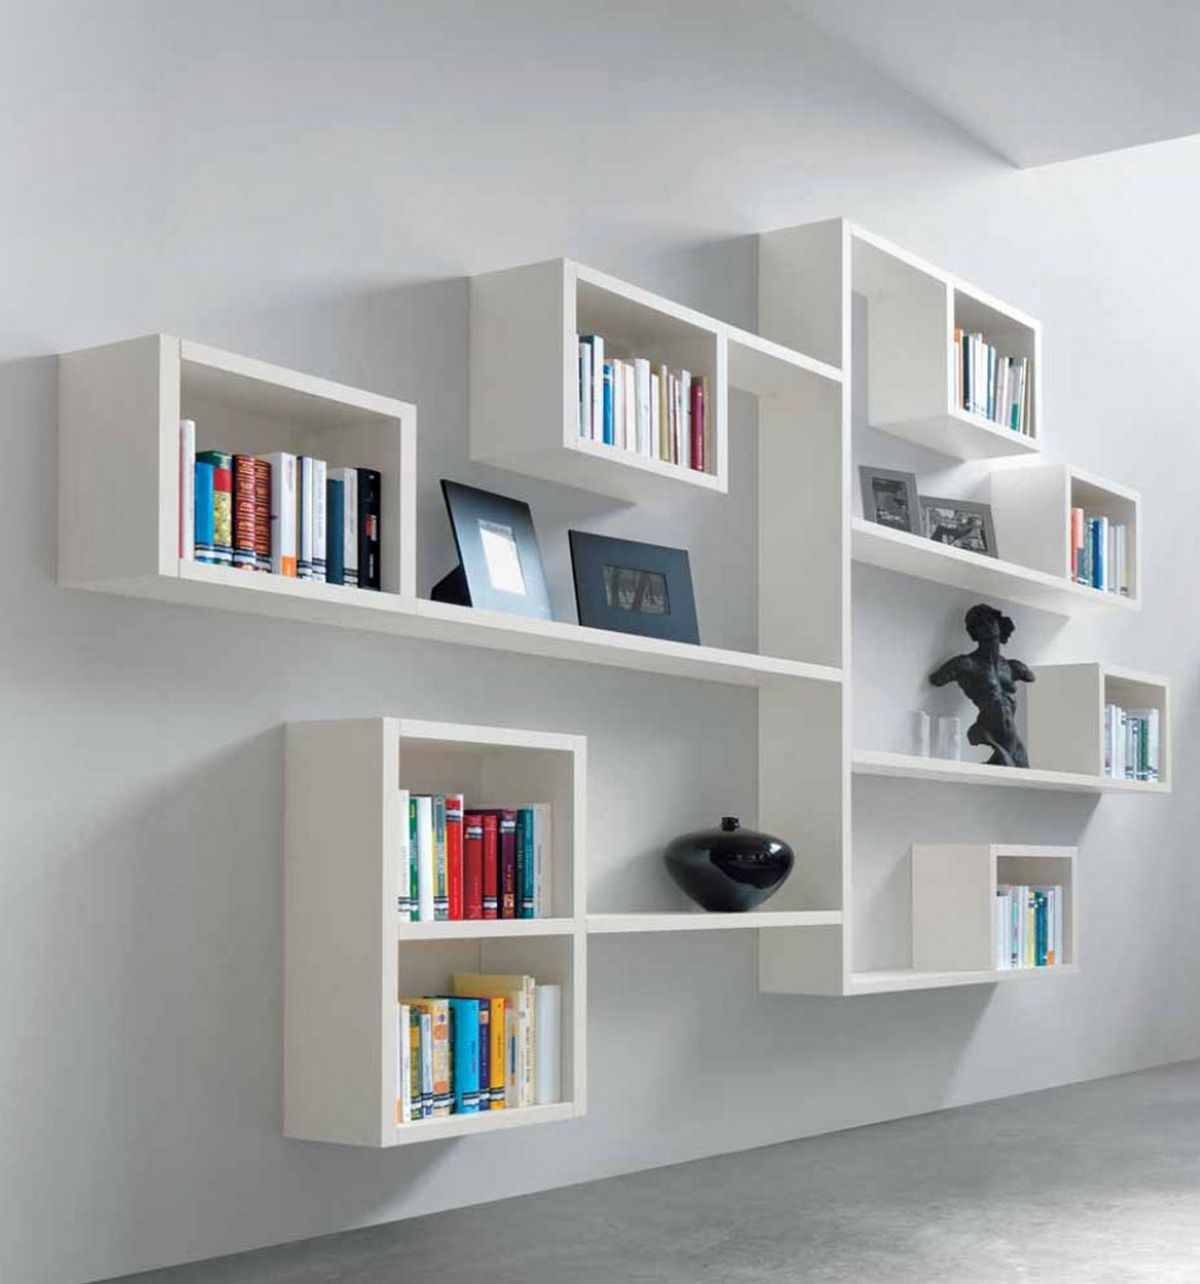 11 Terrific Wall Mounted Bookshelves For Kids Digital Image Idea Bookshelf Design Creative Bookshelves Modern Wall Shelf